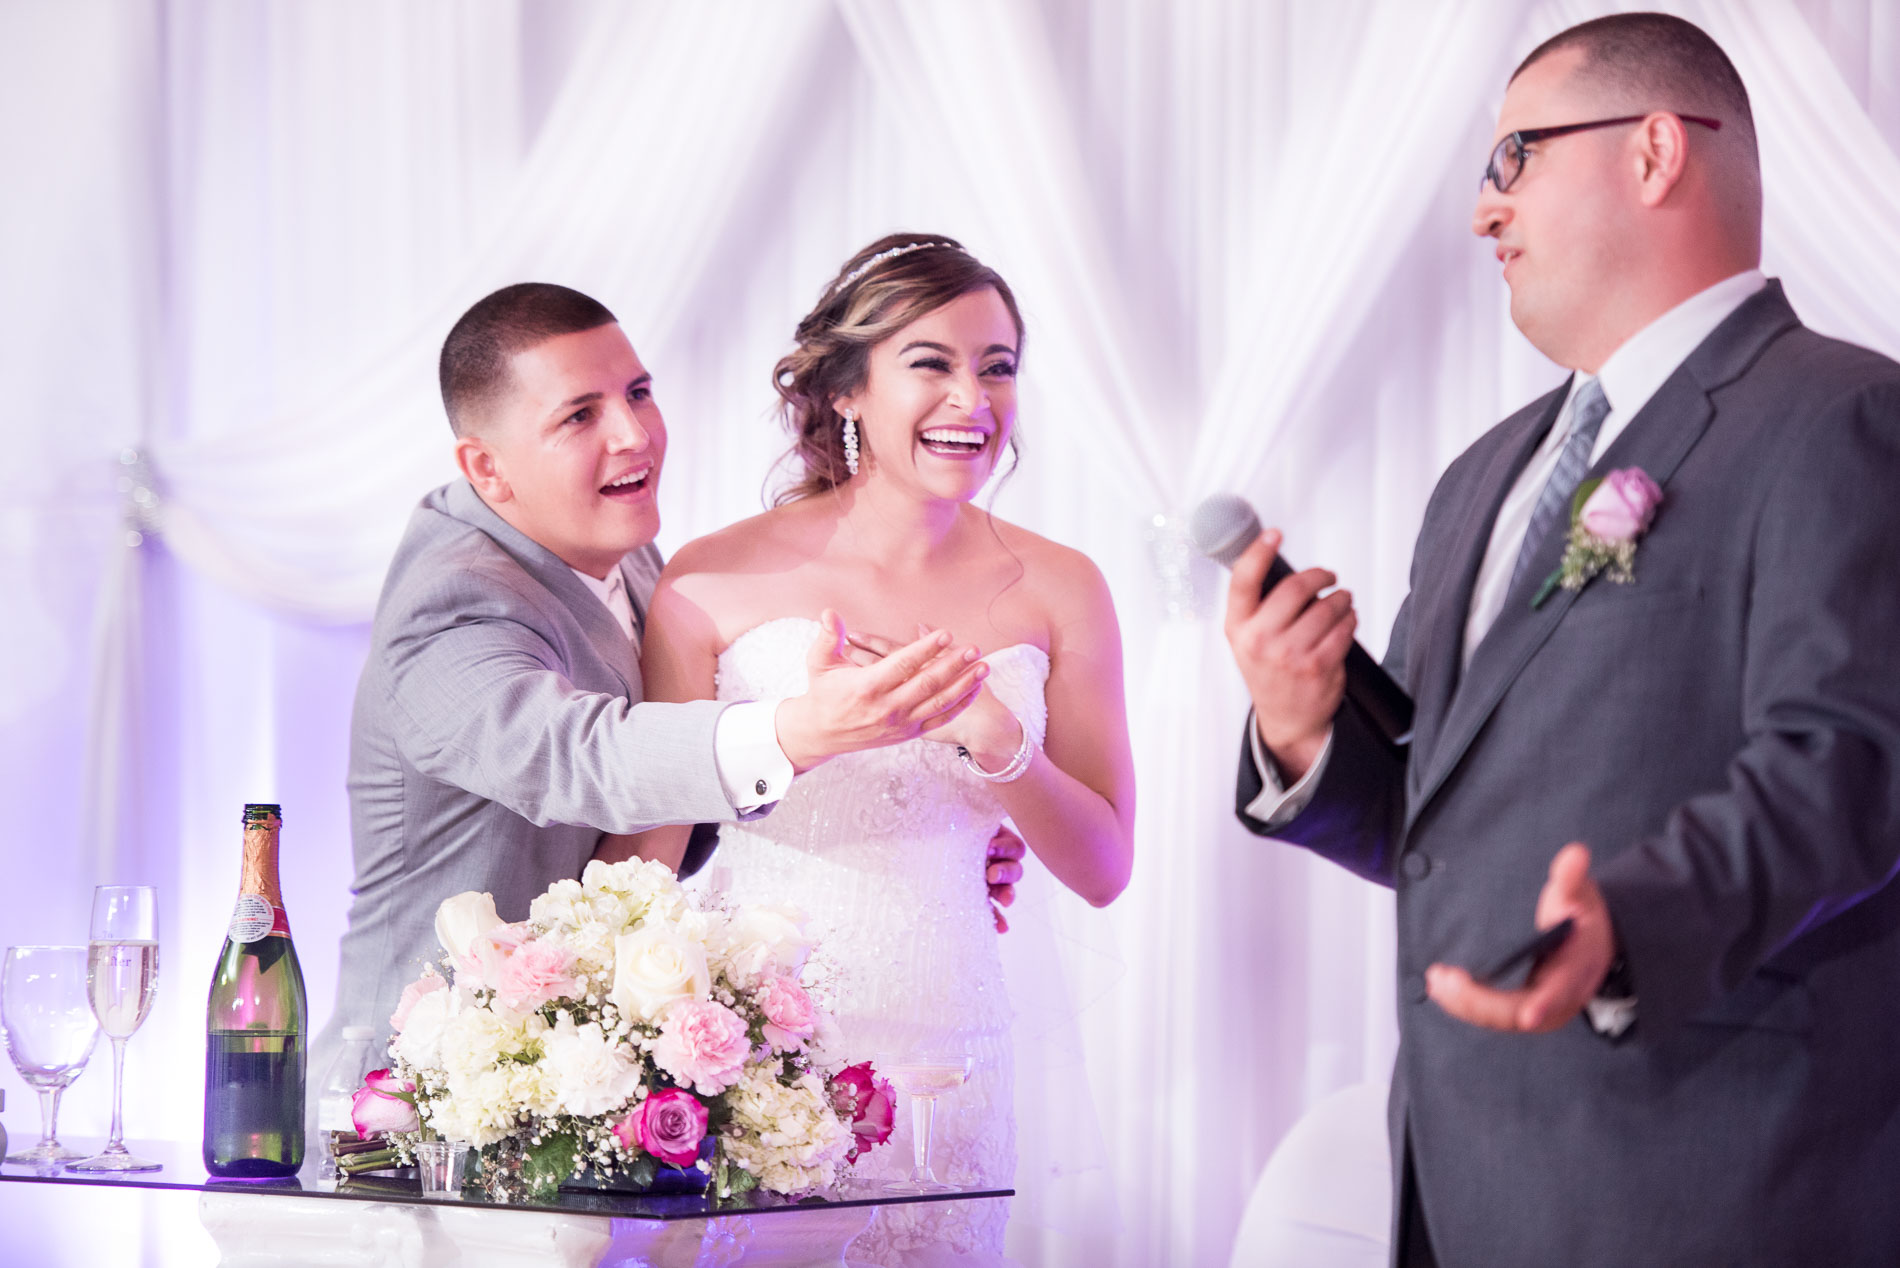 Toasts Archives - Fallbrook Photography